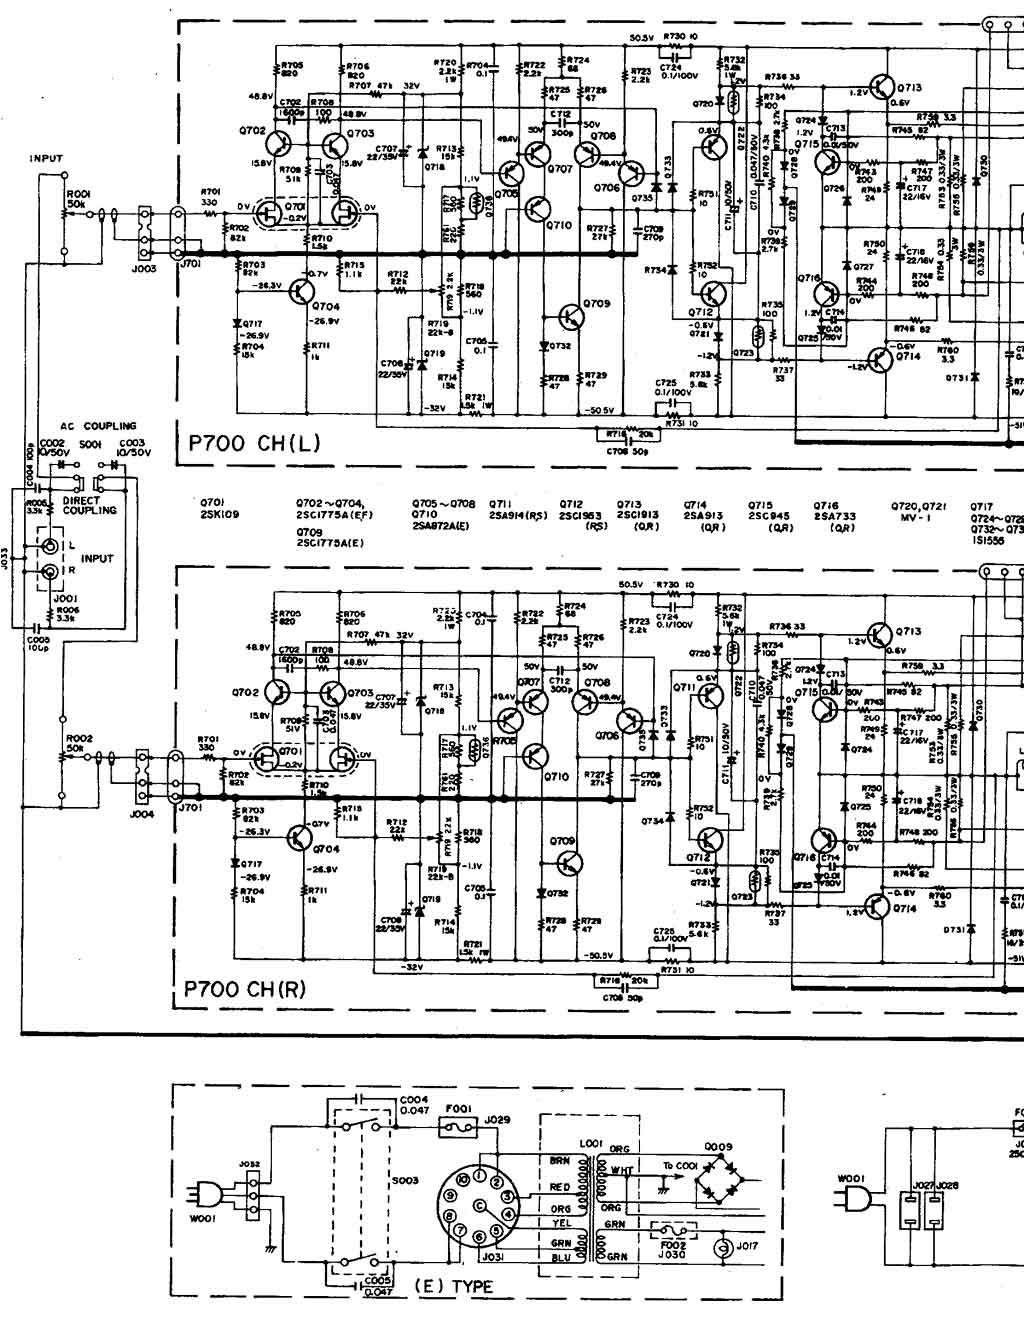 [DIAGRAM] Schematic Diagram Manual Viewsonic 1564a Monitor